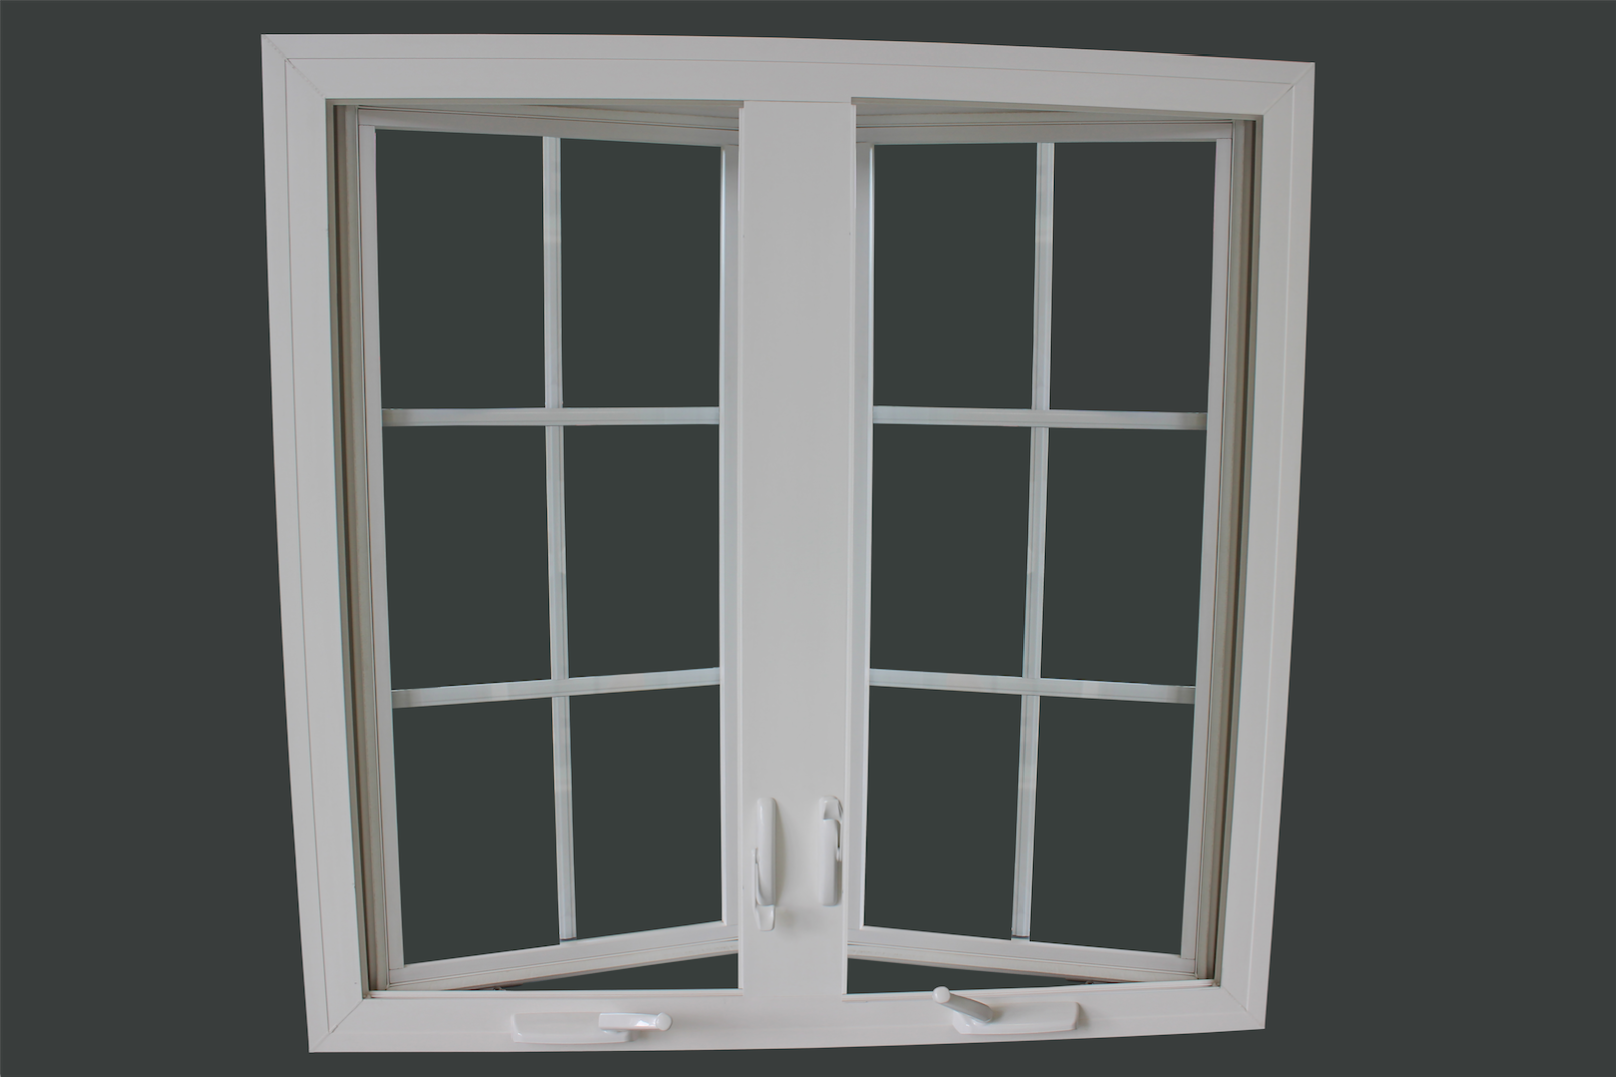 Replacement Casement Windows Of Replacement Casement Windows Specialty Wholesale Supply